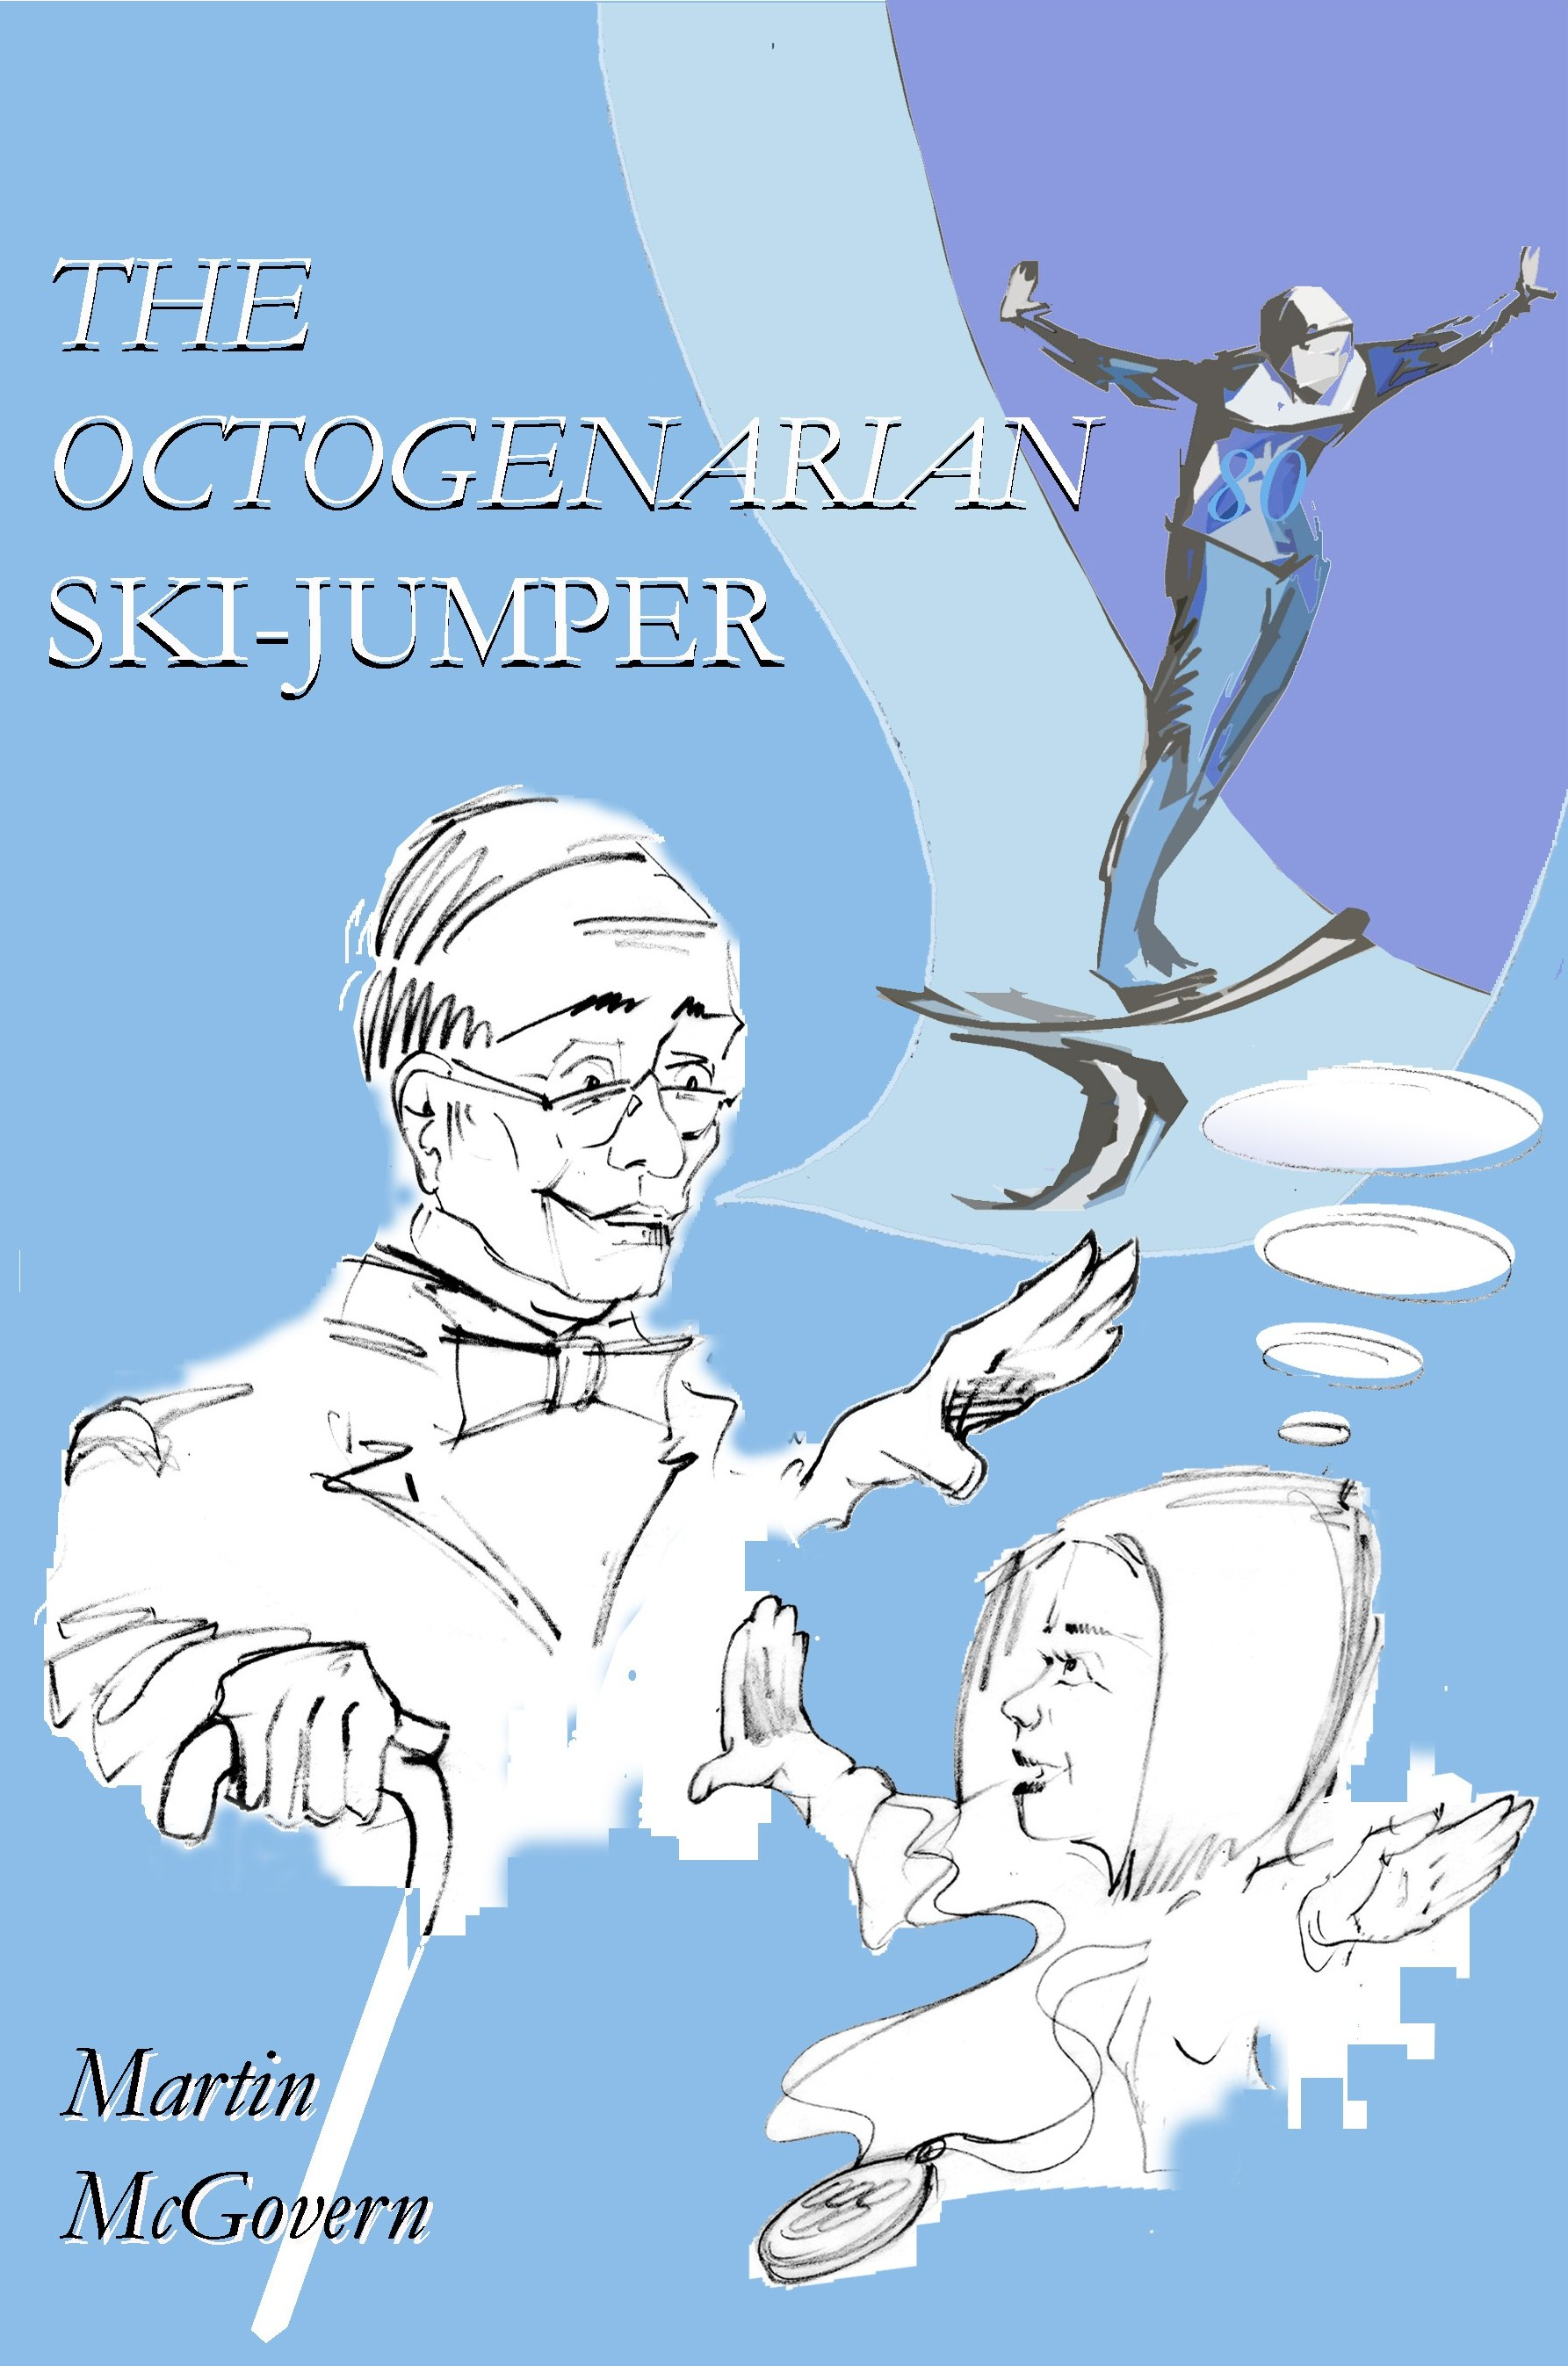 Age 21 - The Octogenarian Ski-jumper